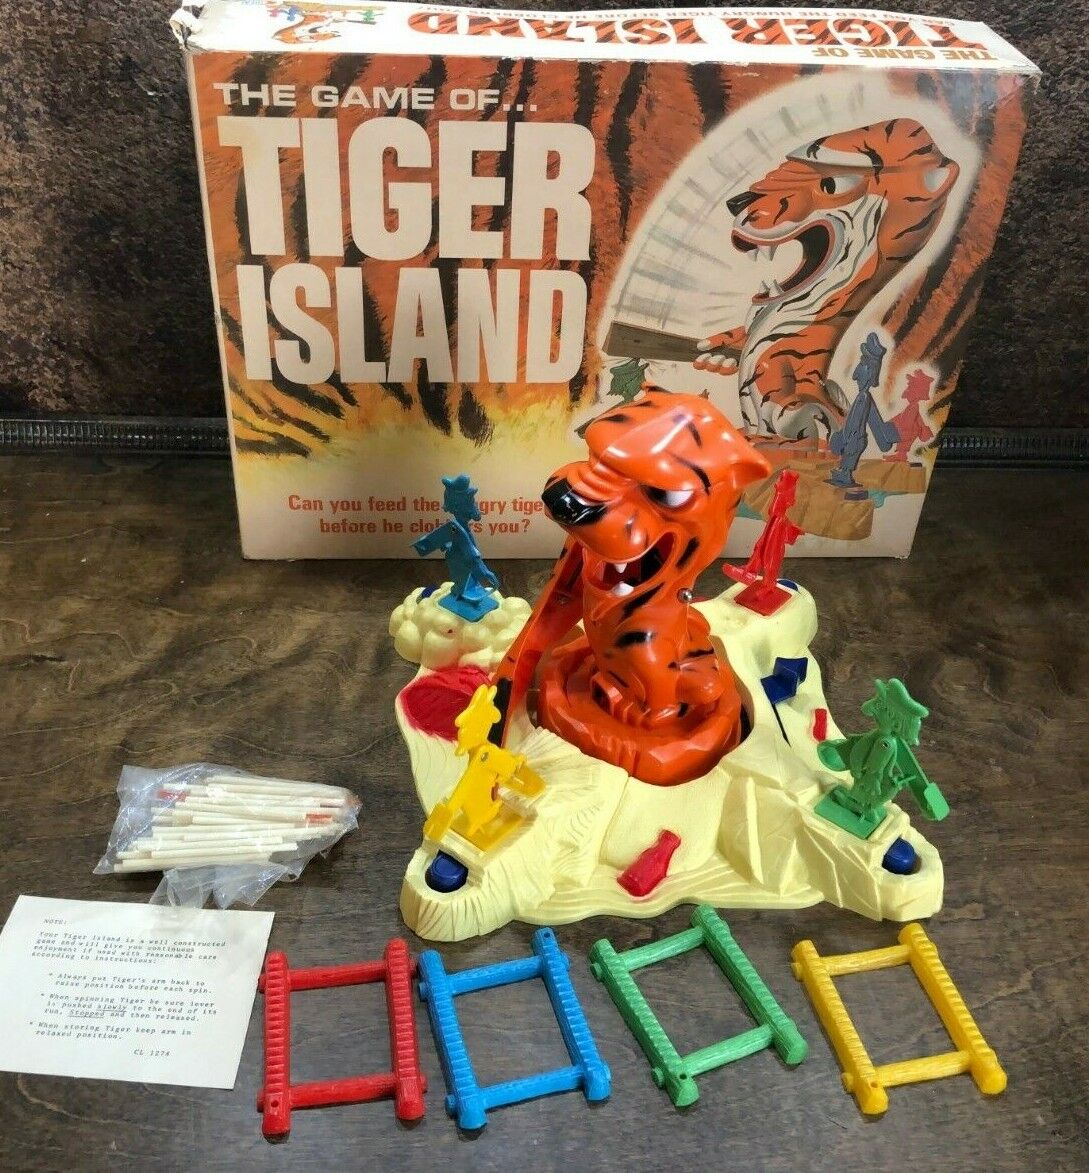 31817 The Game of Tiger Island Ideal Toys 1966 in original box